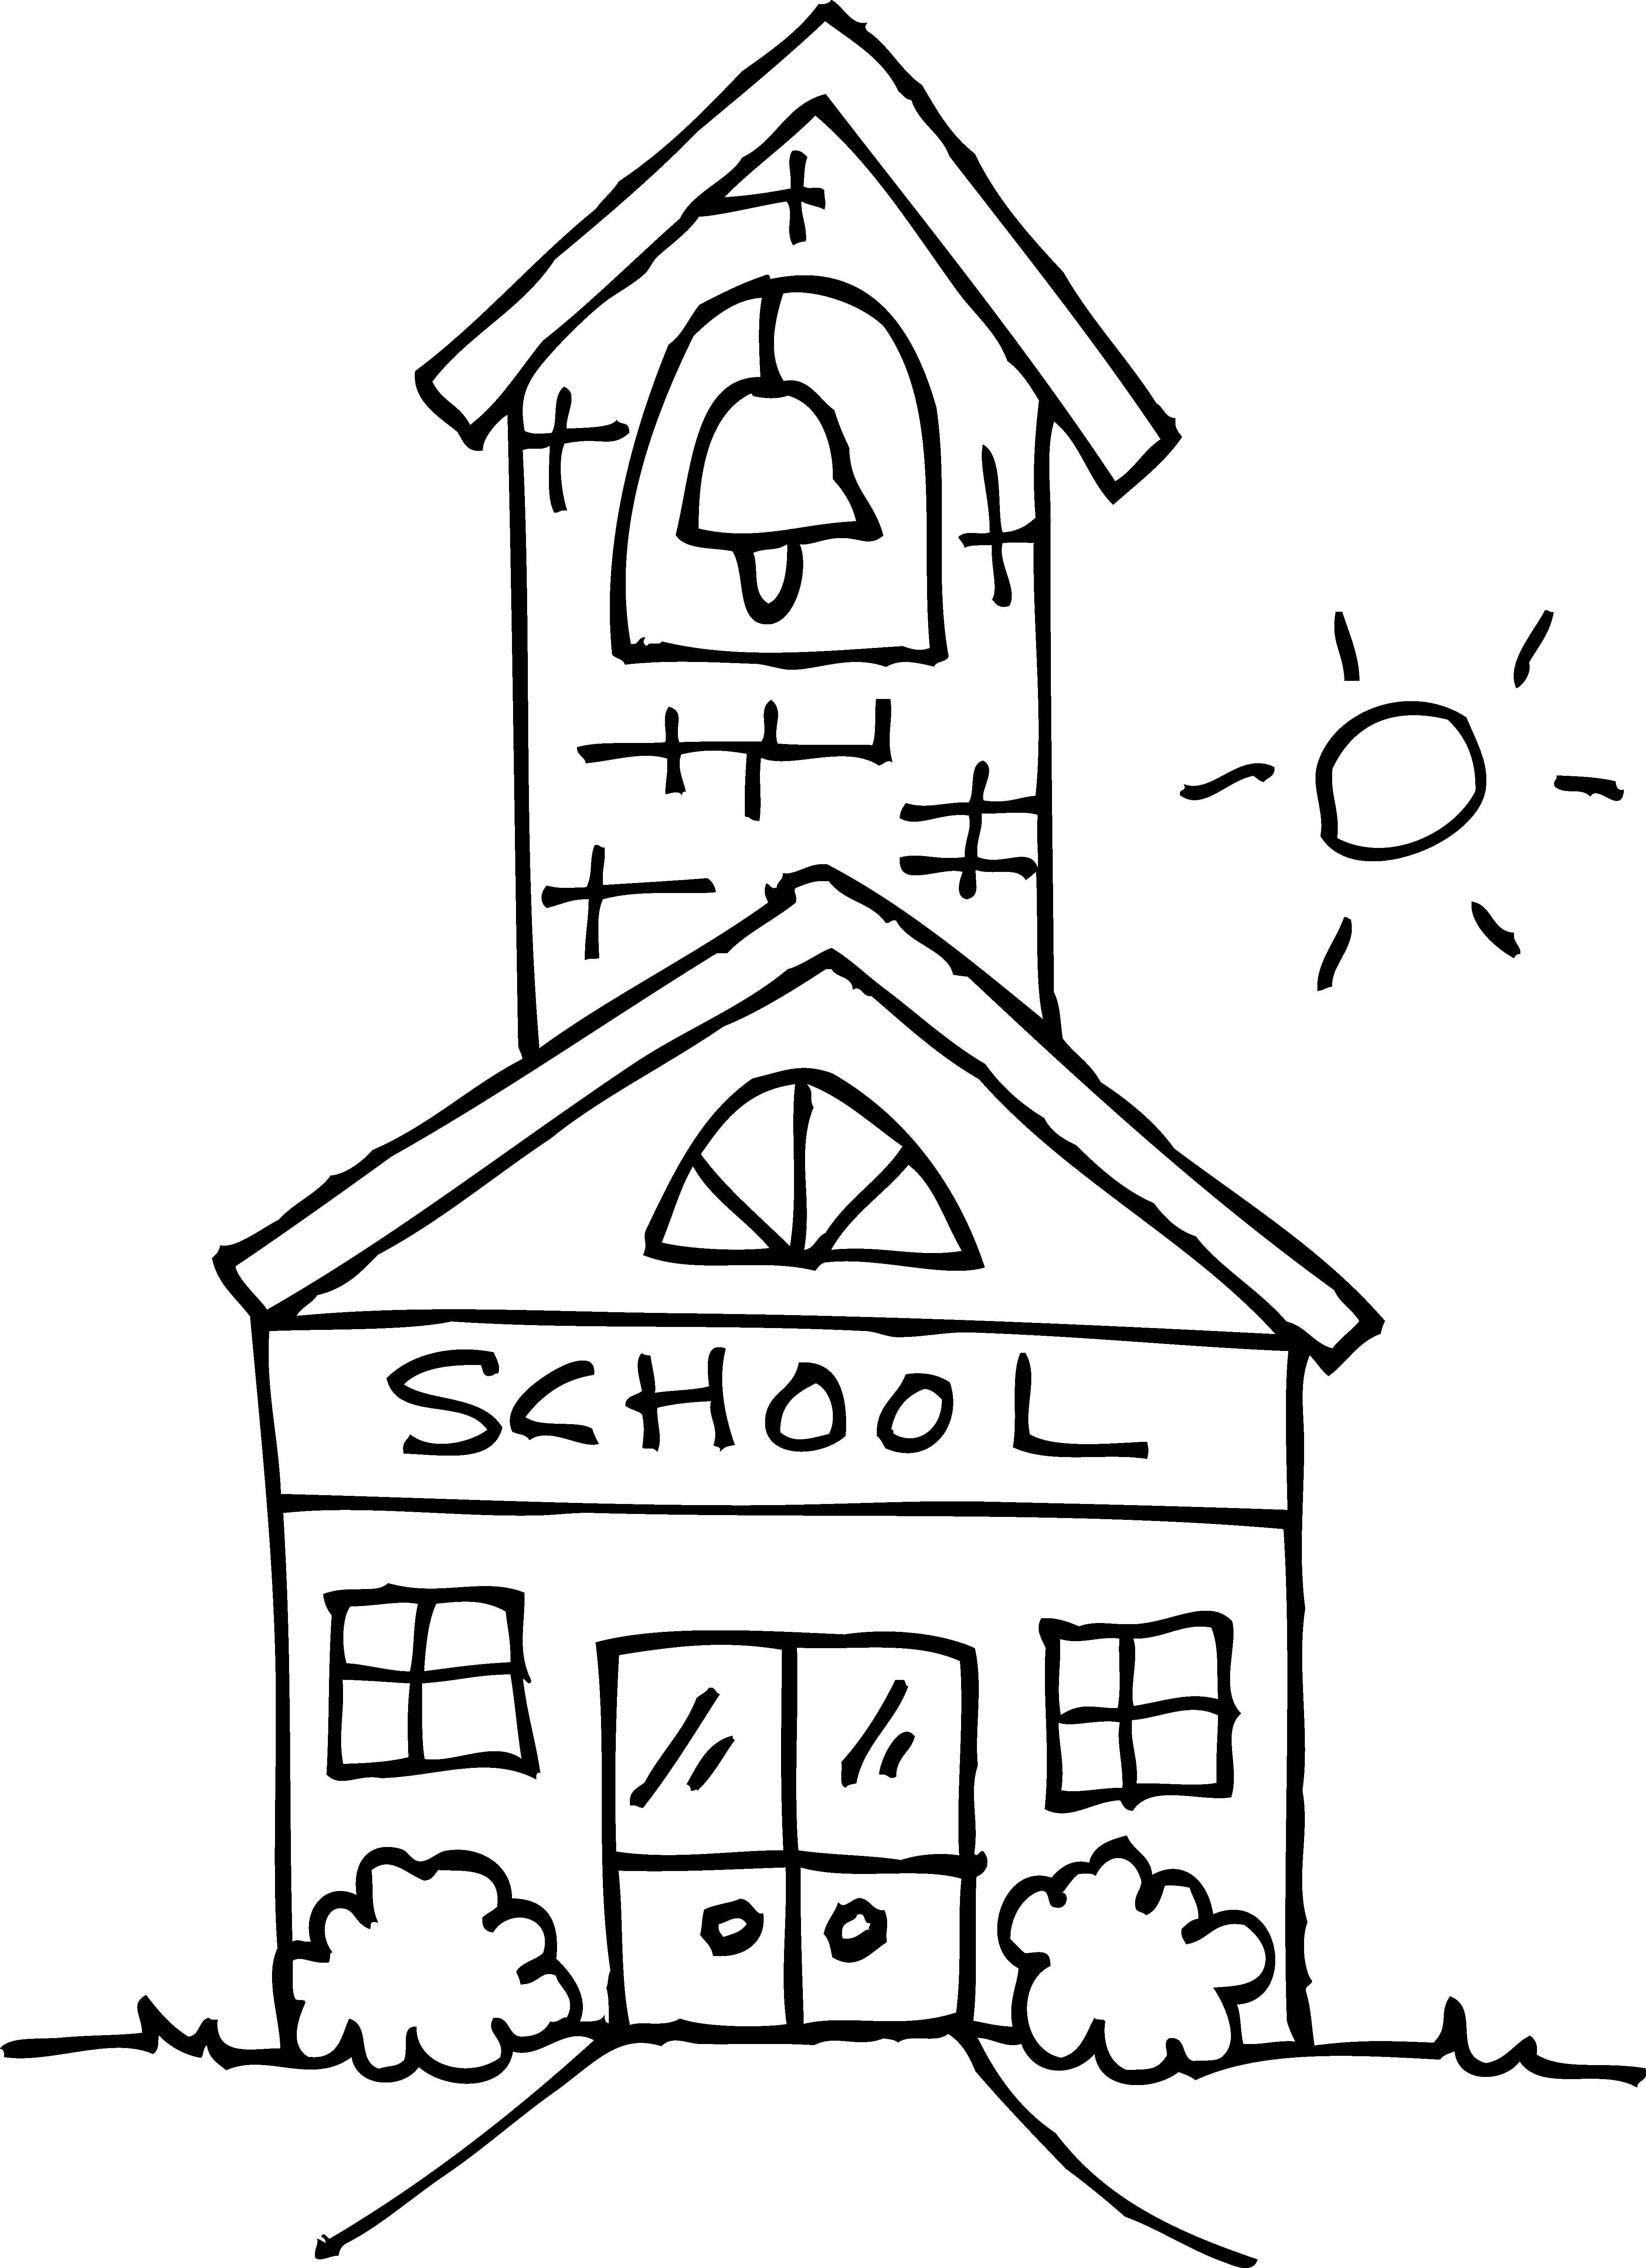 Schoolhouse With Bell Coloring Page